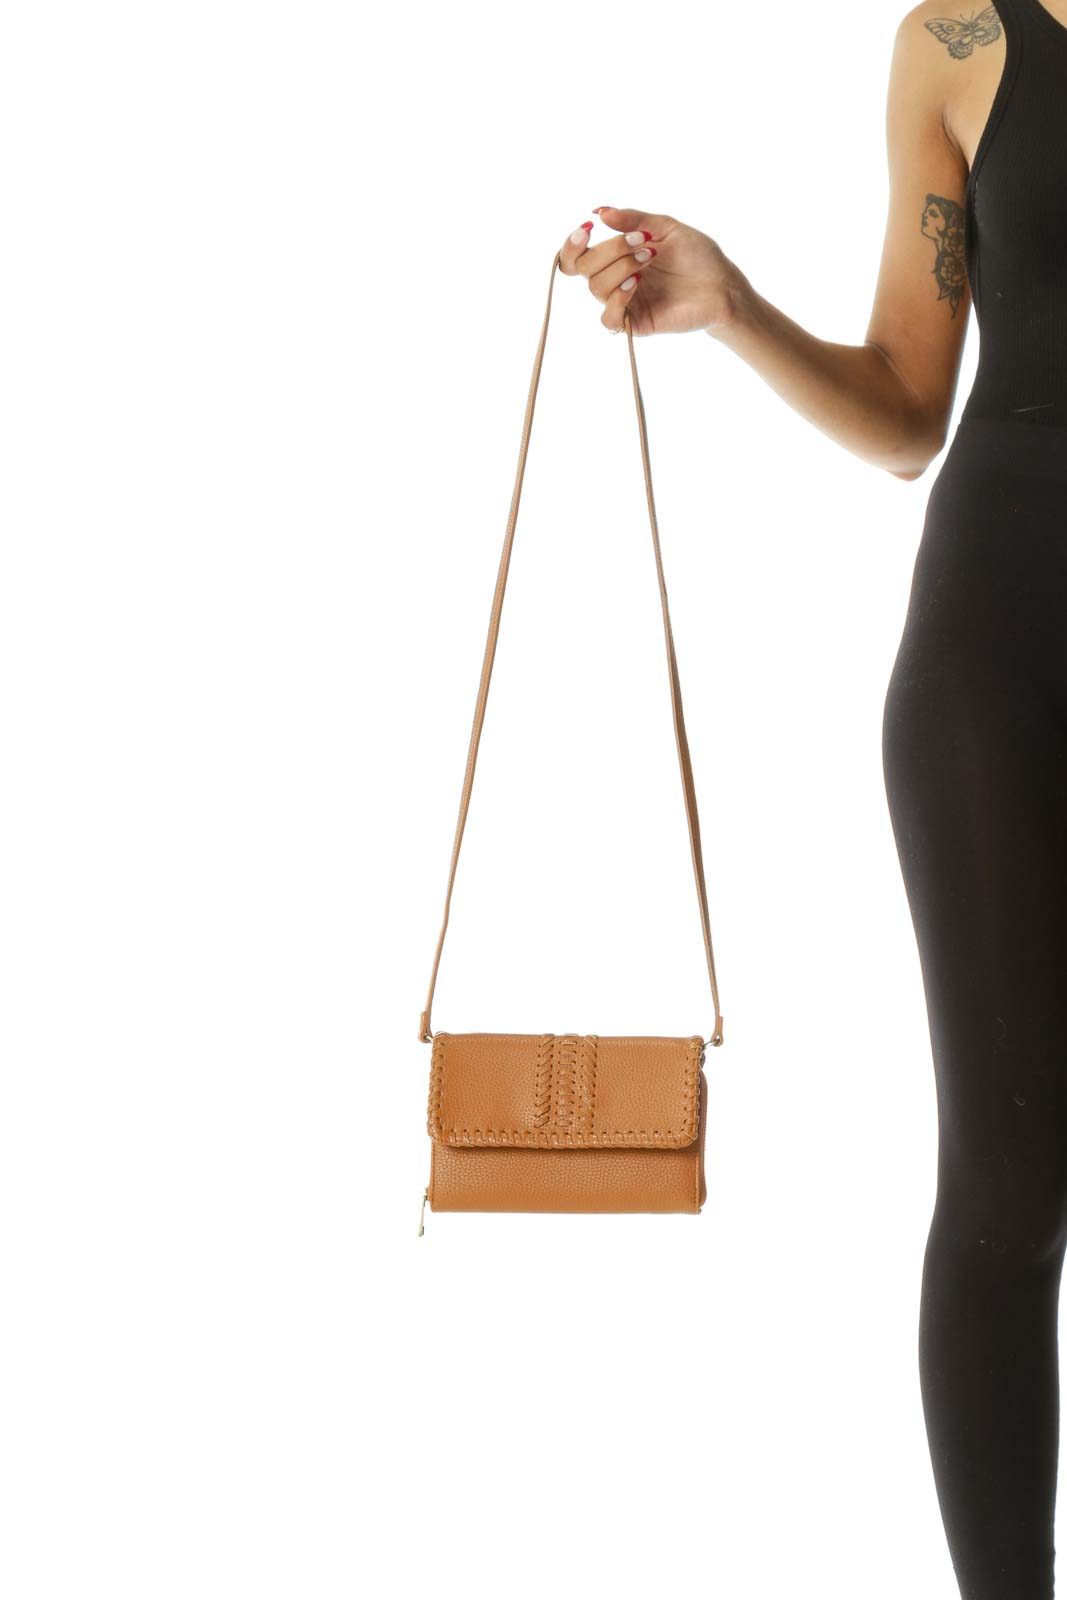 Brown Textured Flap Knit Multi-Pocketed Zippered Crossbody Bag to Clutch Conversion